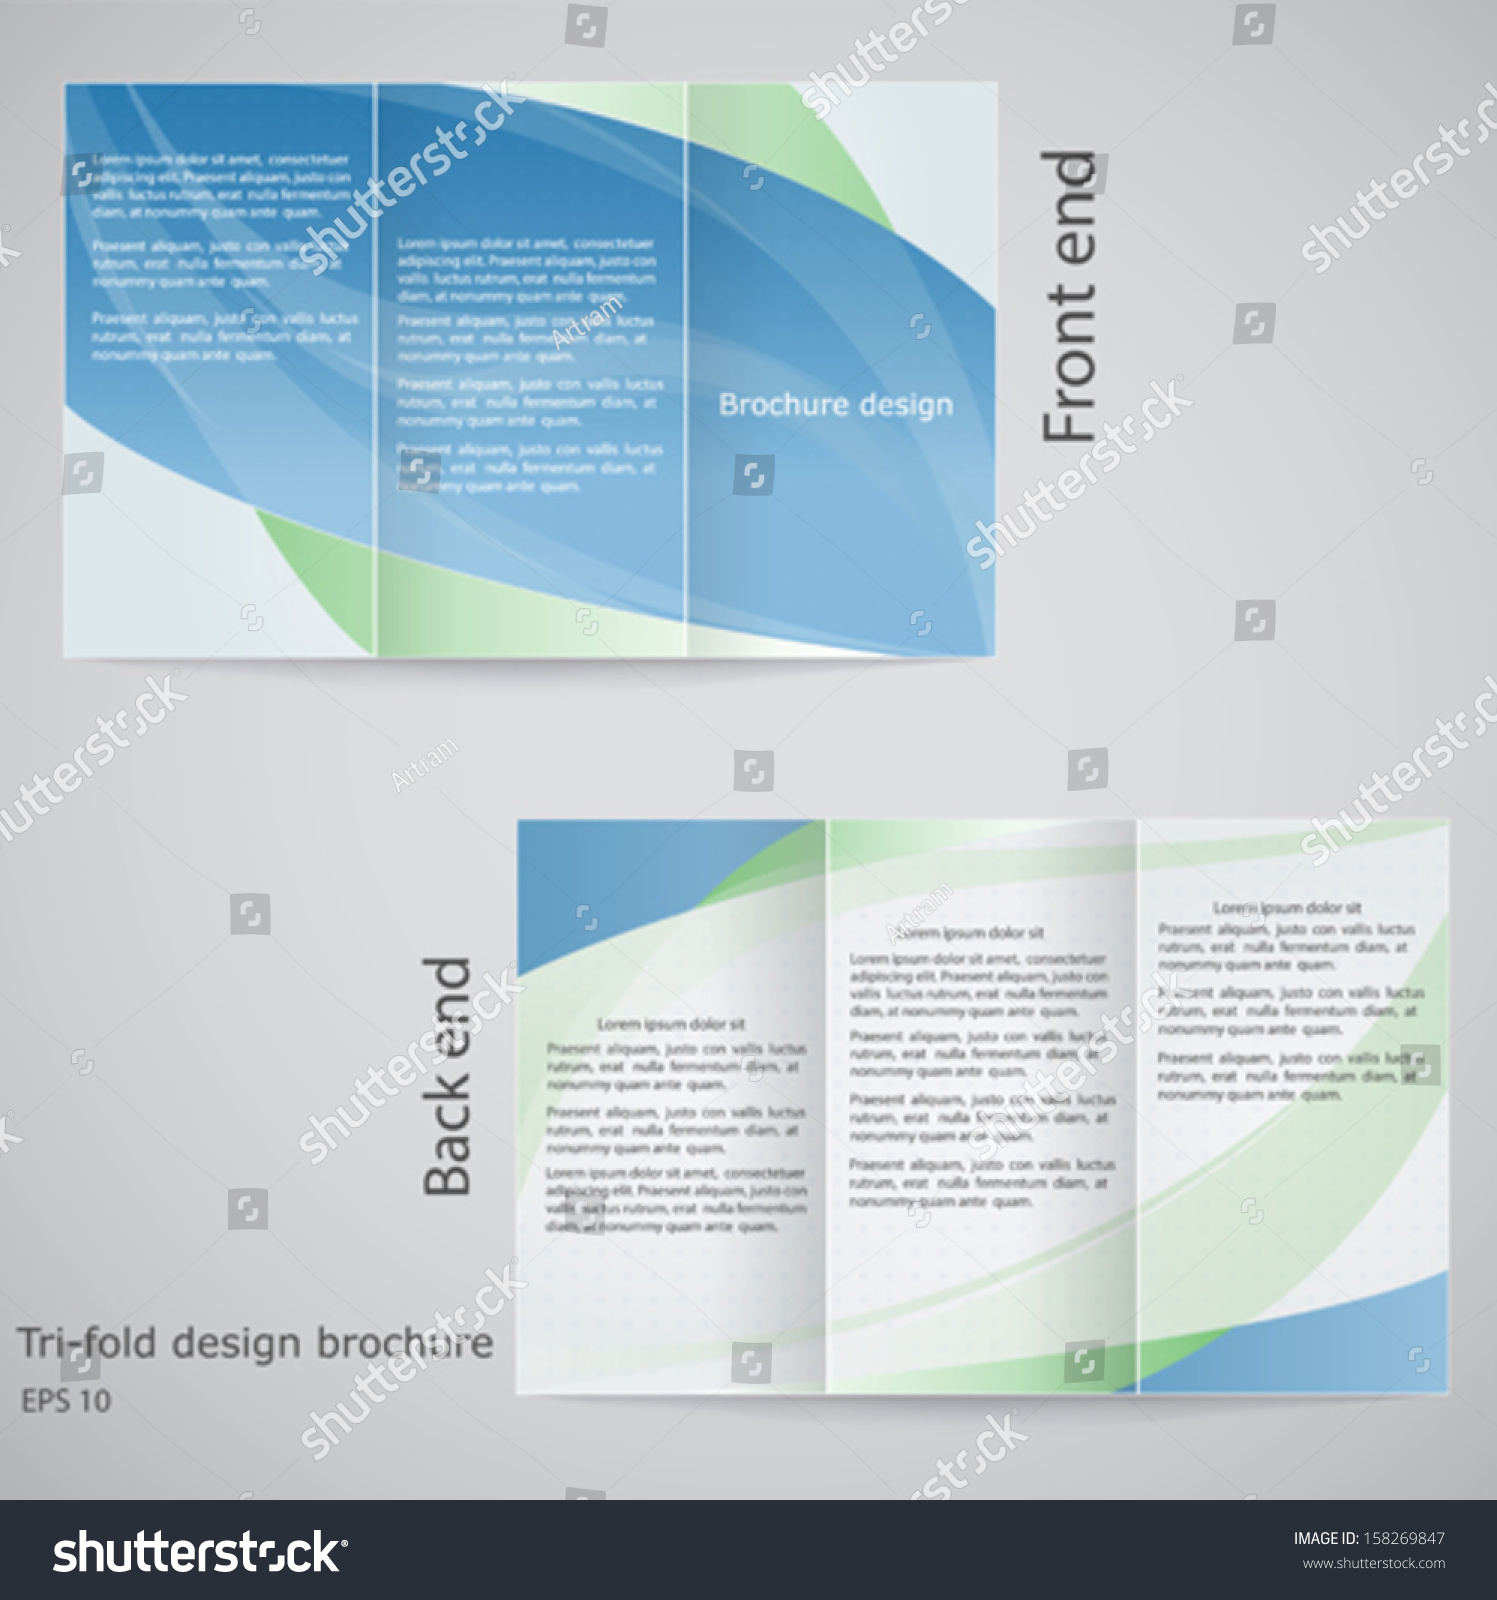 Generous 1 Page Proposal Template Thick 1 Week Schedule Template Round 110 Block Label Template 1st Birthday Invite Templates Old 2 Page Resume Format Doc Gray2 Page Resume Template Word Trifold Brochure Design Brochure Template Design Stock Vector ..